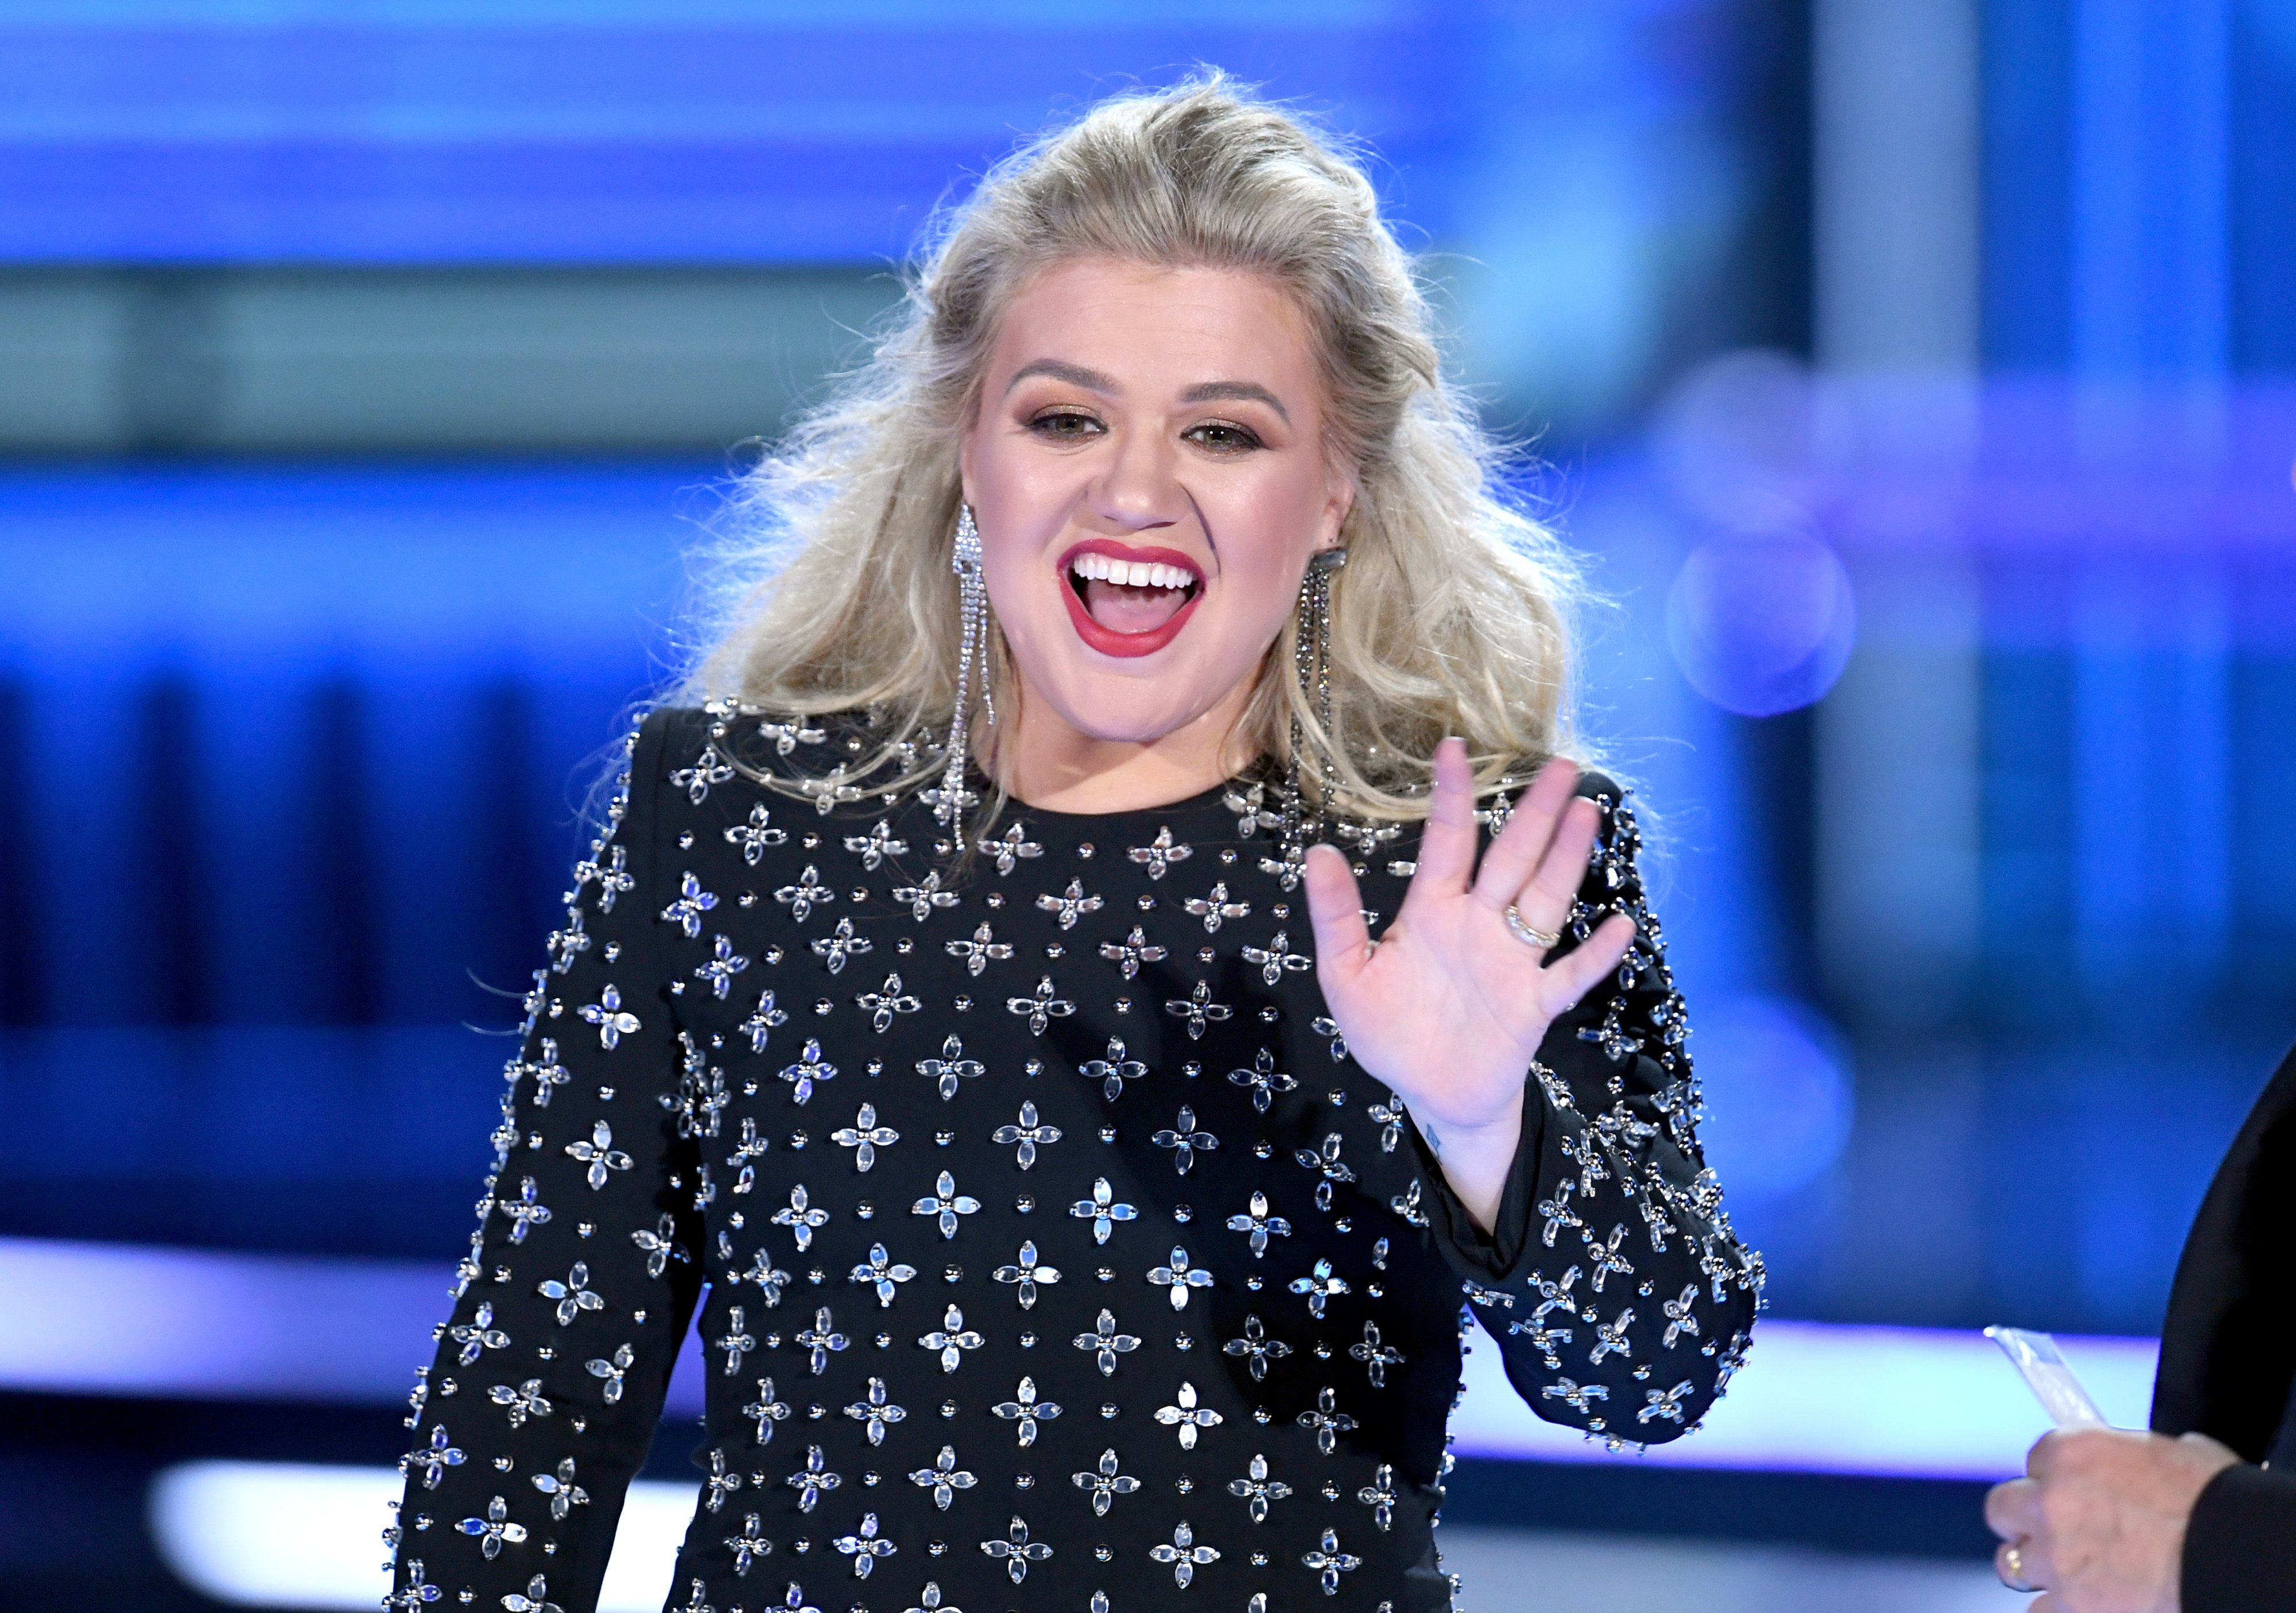 Kelly Clarkson speaks onstage during the 2019 Billboard Music Awards on May 01, 2019, in Las Vegas, Nevada. | Source: Getty Images.